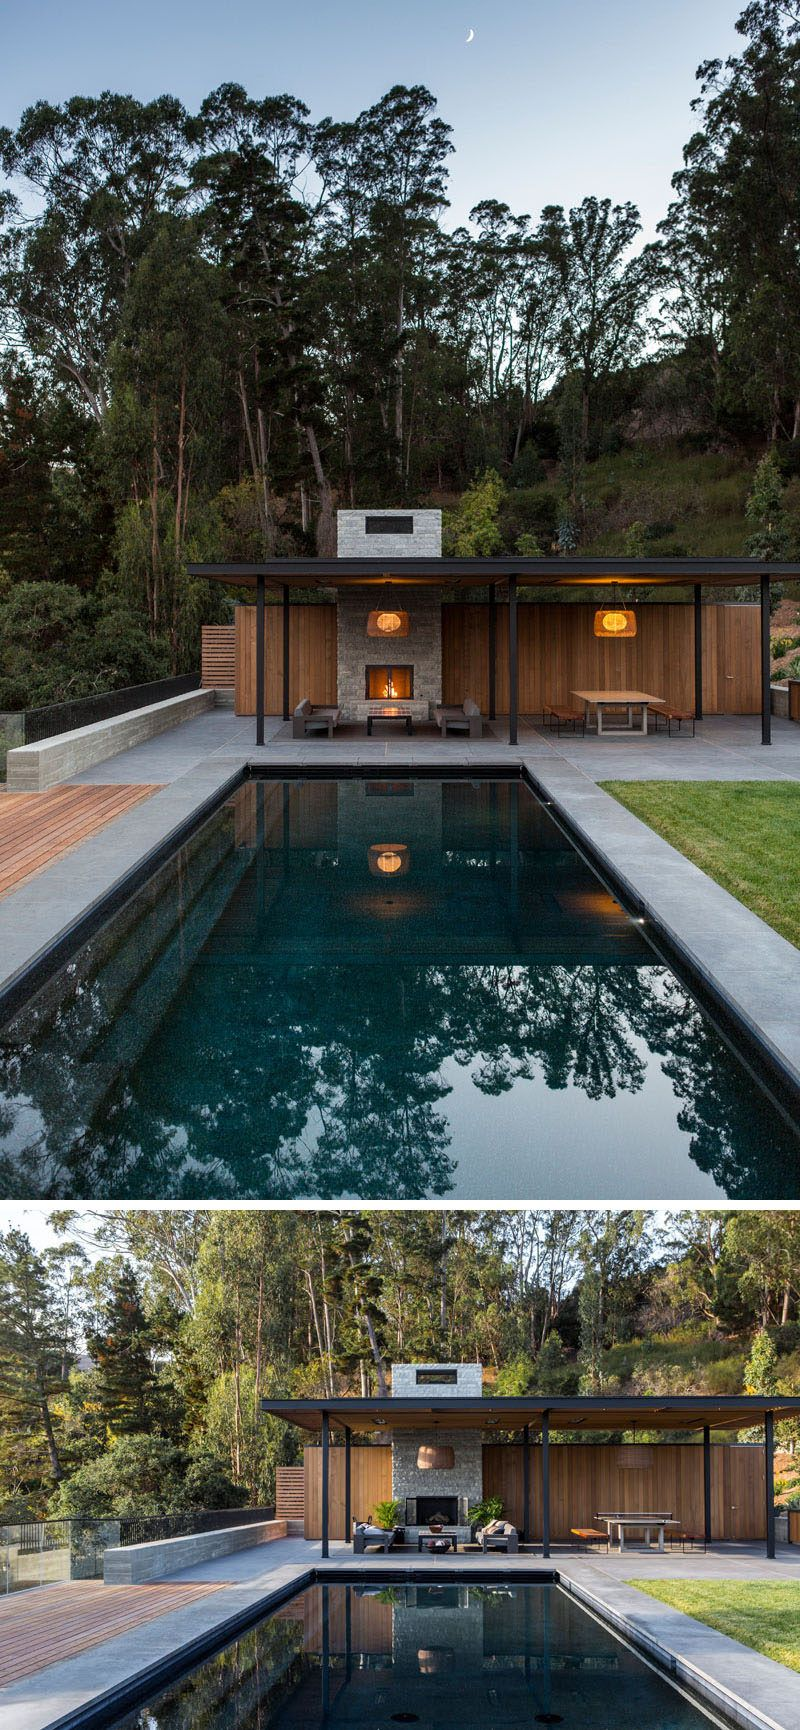 The Tiburon Bay View House By Walker Warner Architects With Images Pool Cabana Modern Pools Pool Decor